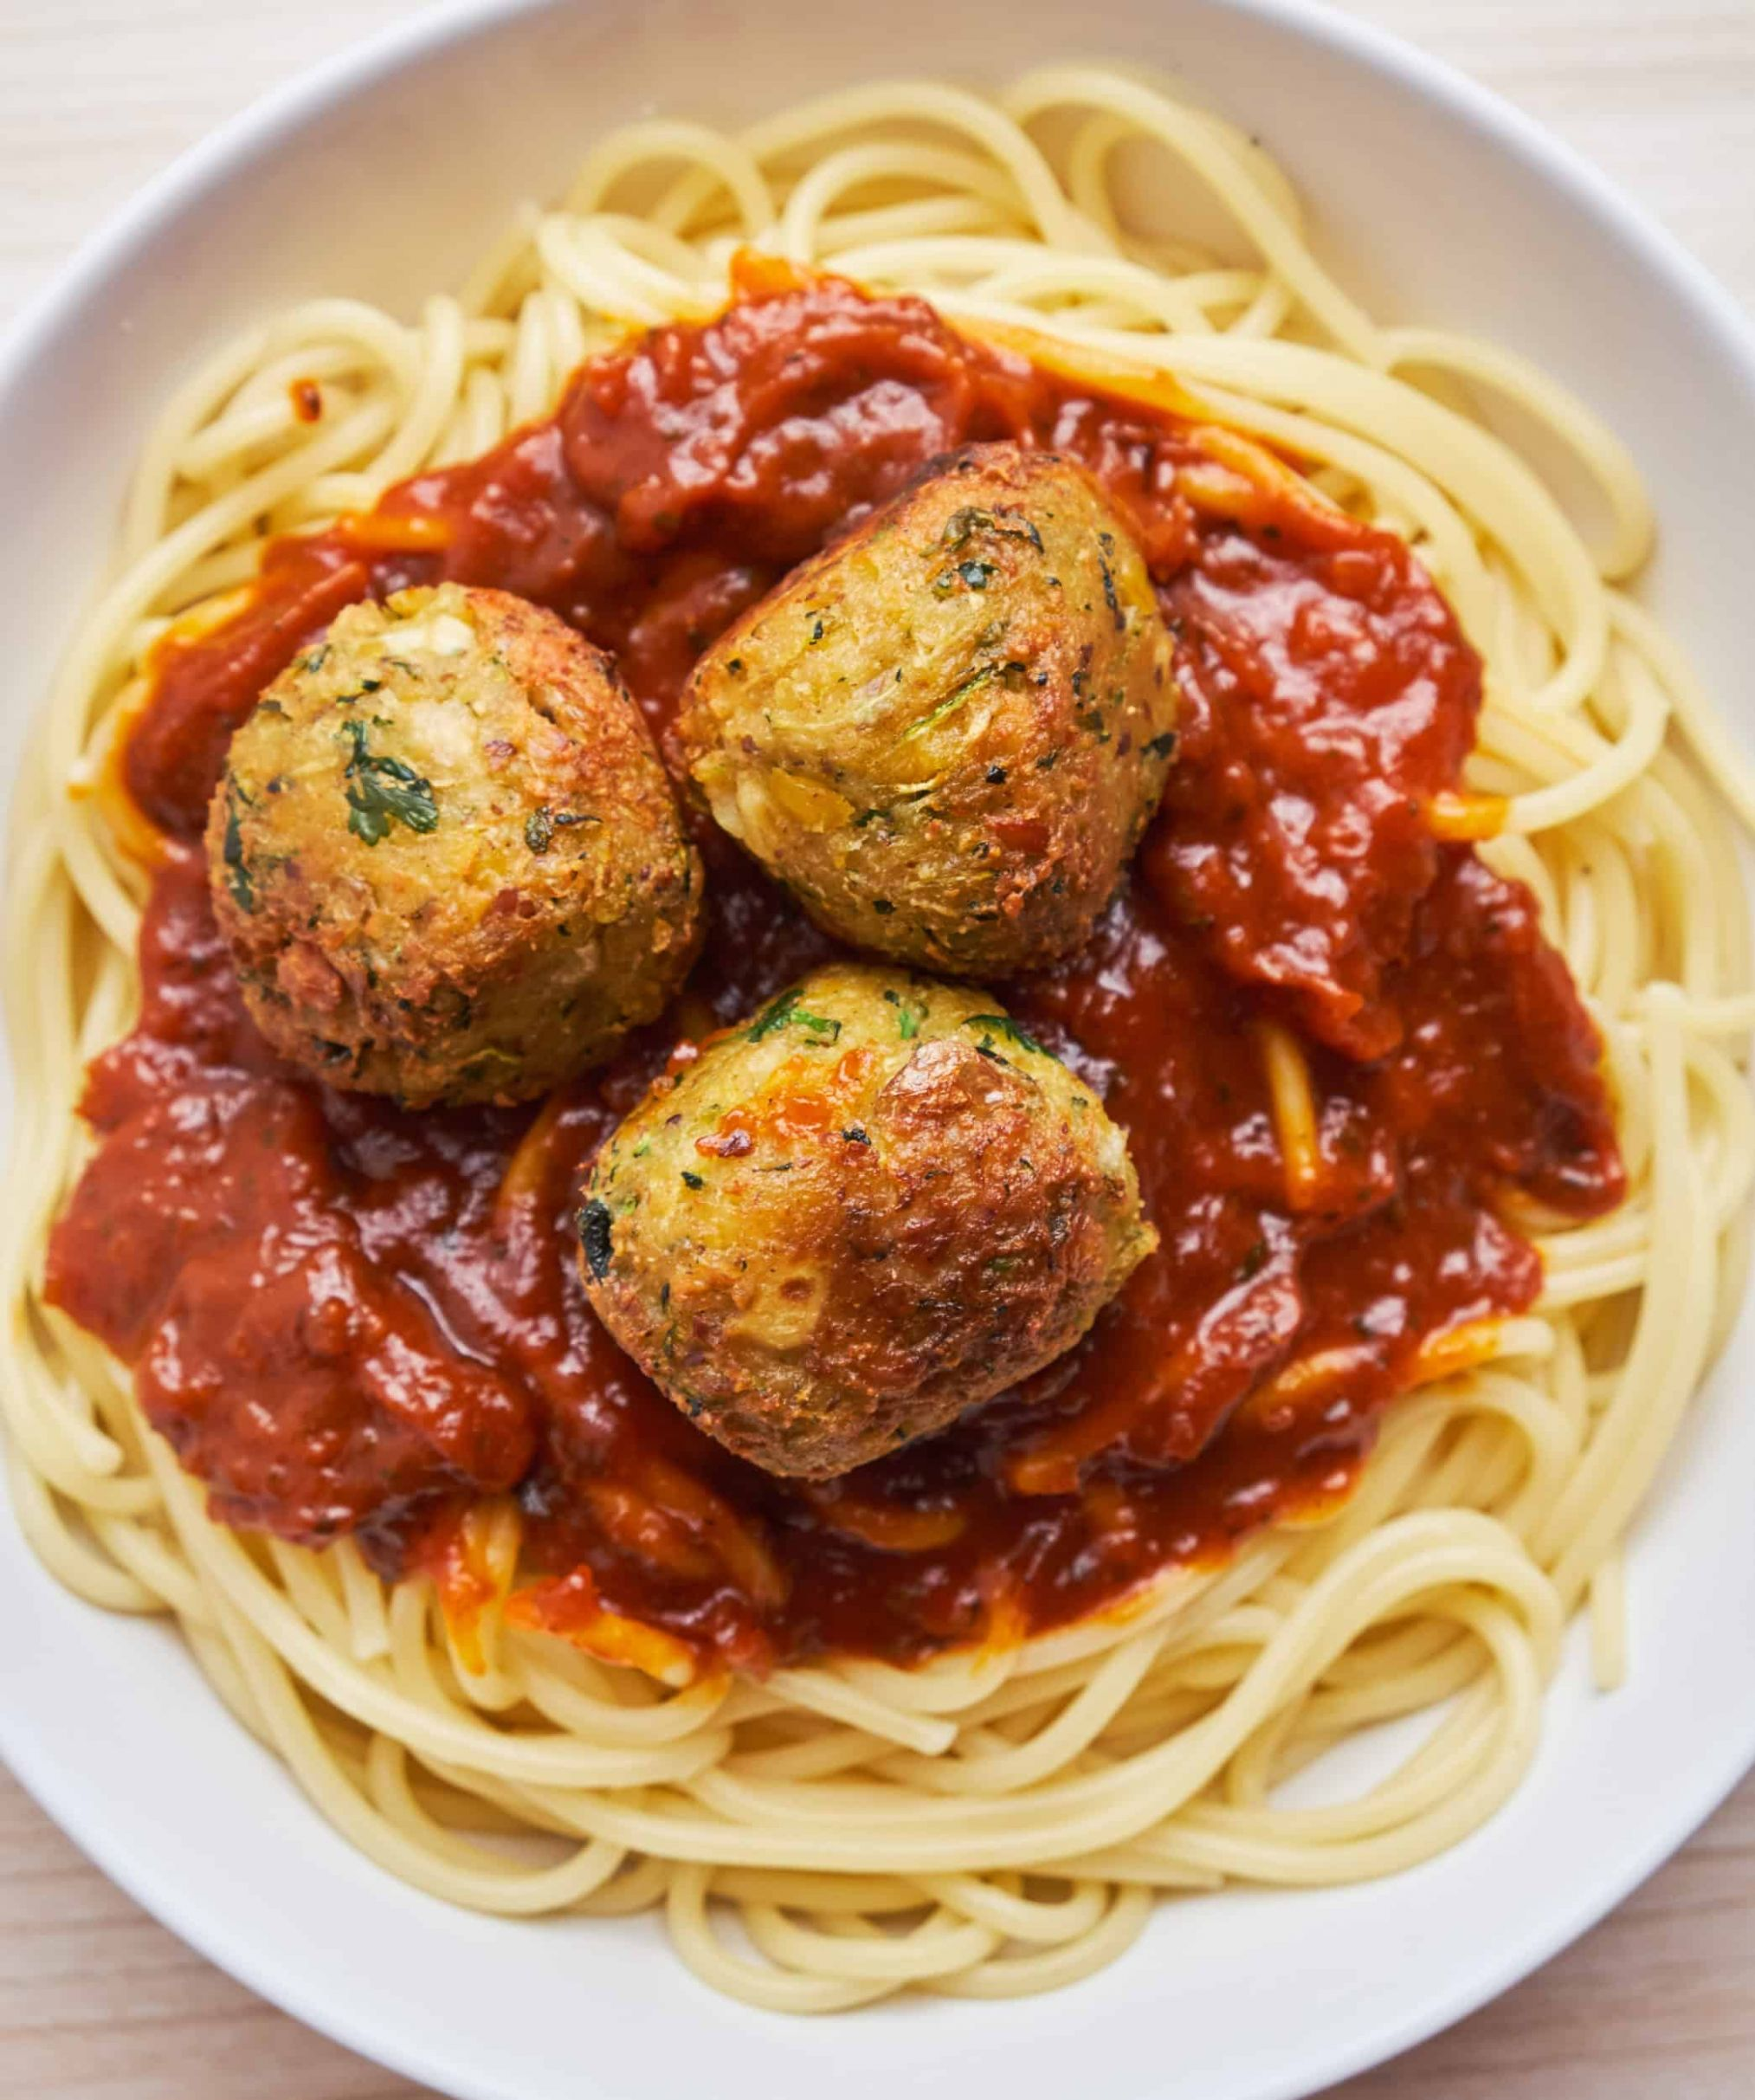 Vegan Meatballs (Chickpea-Zucchini) | Veganbell - Vegan Recipes Zucchini Meatballs